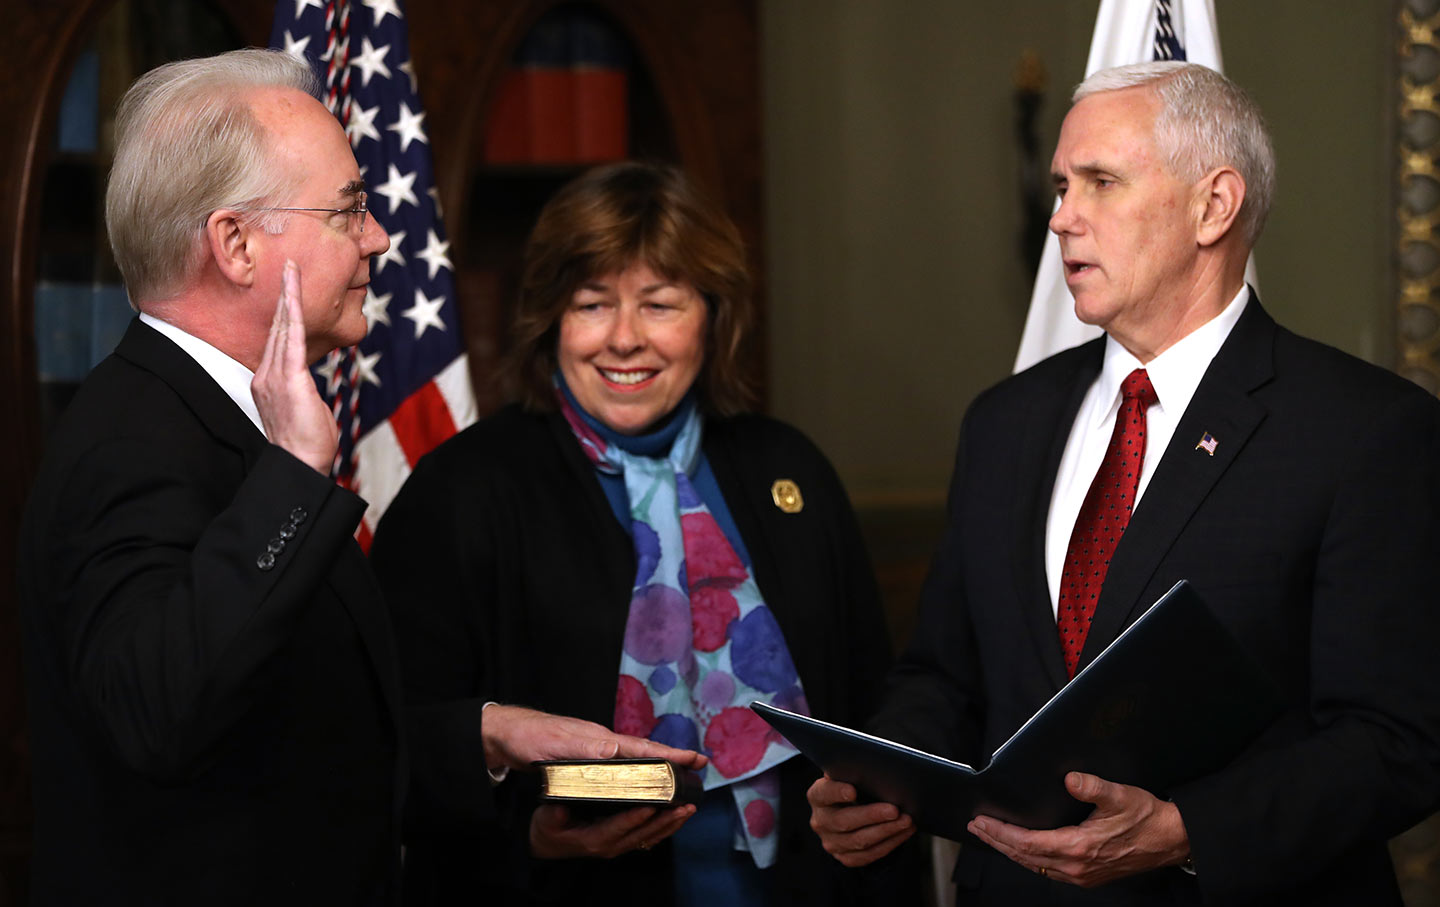 Tom Price, Mike Pence